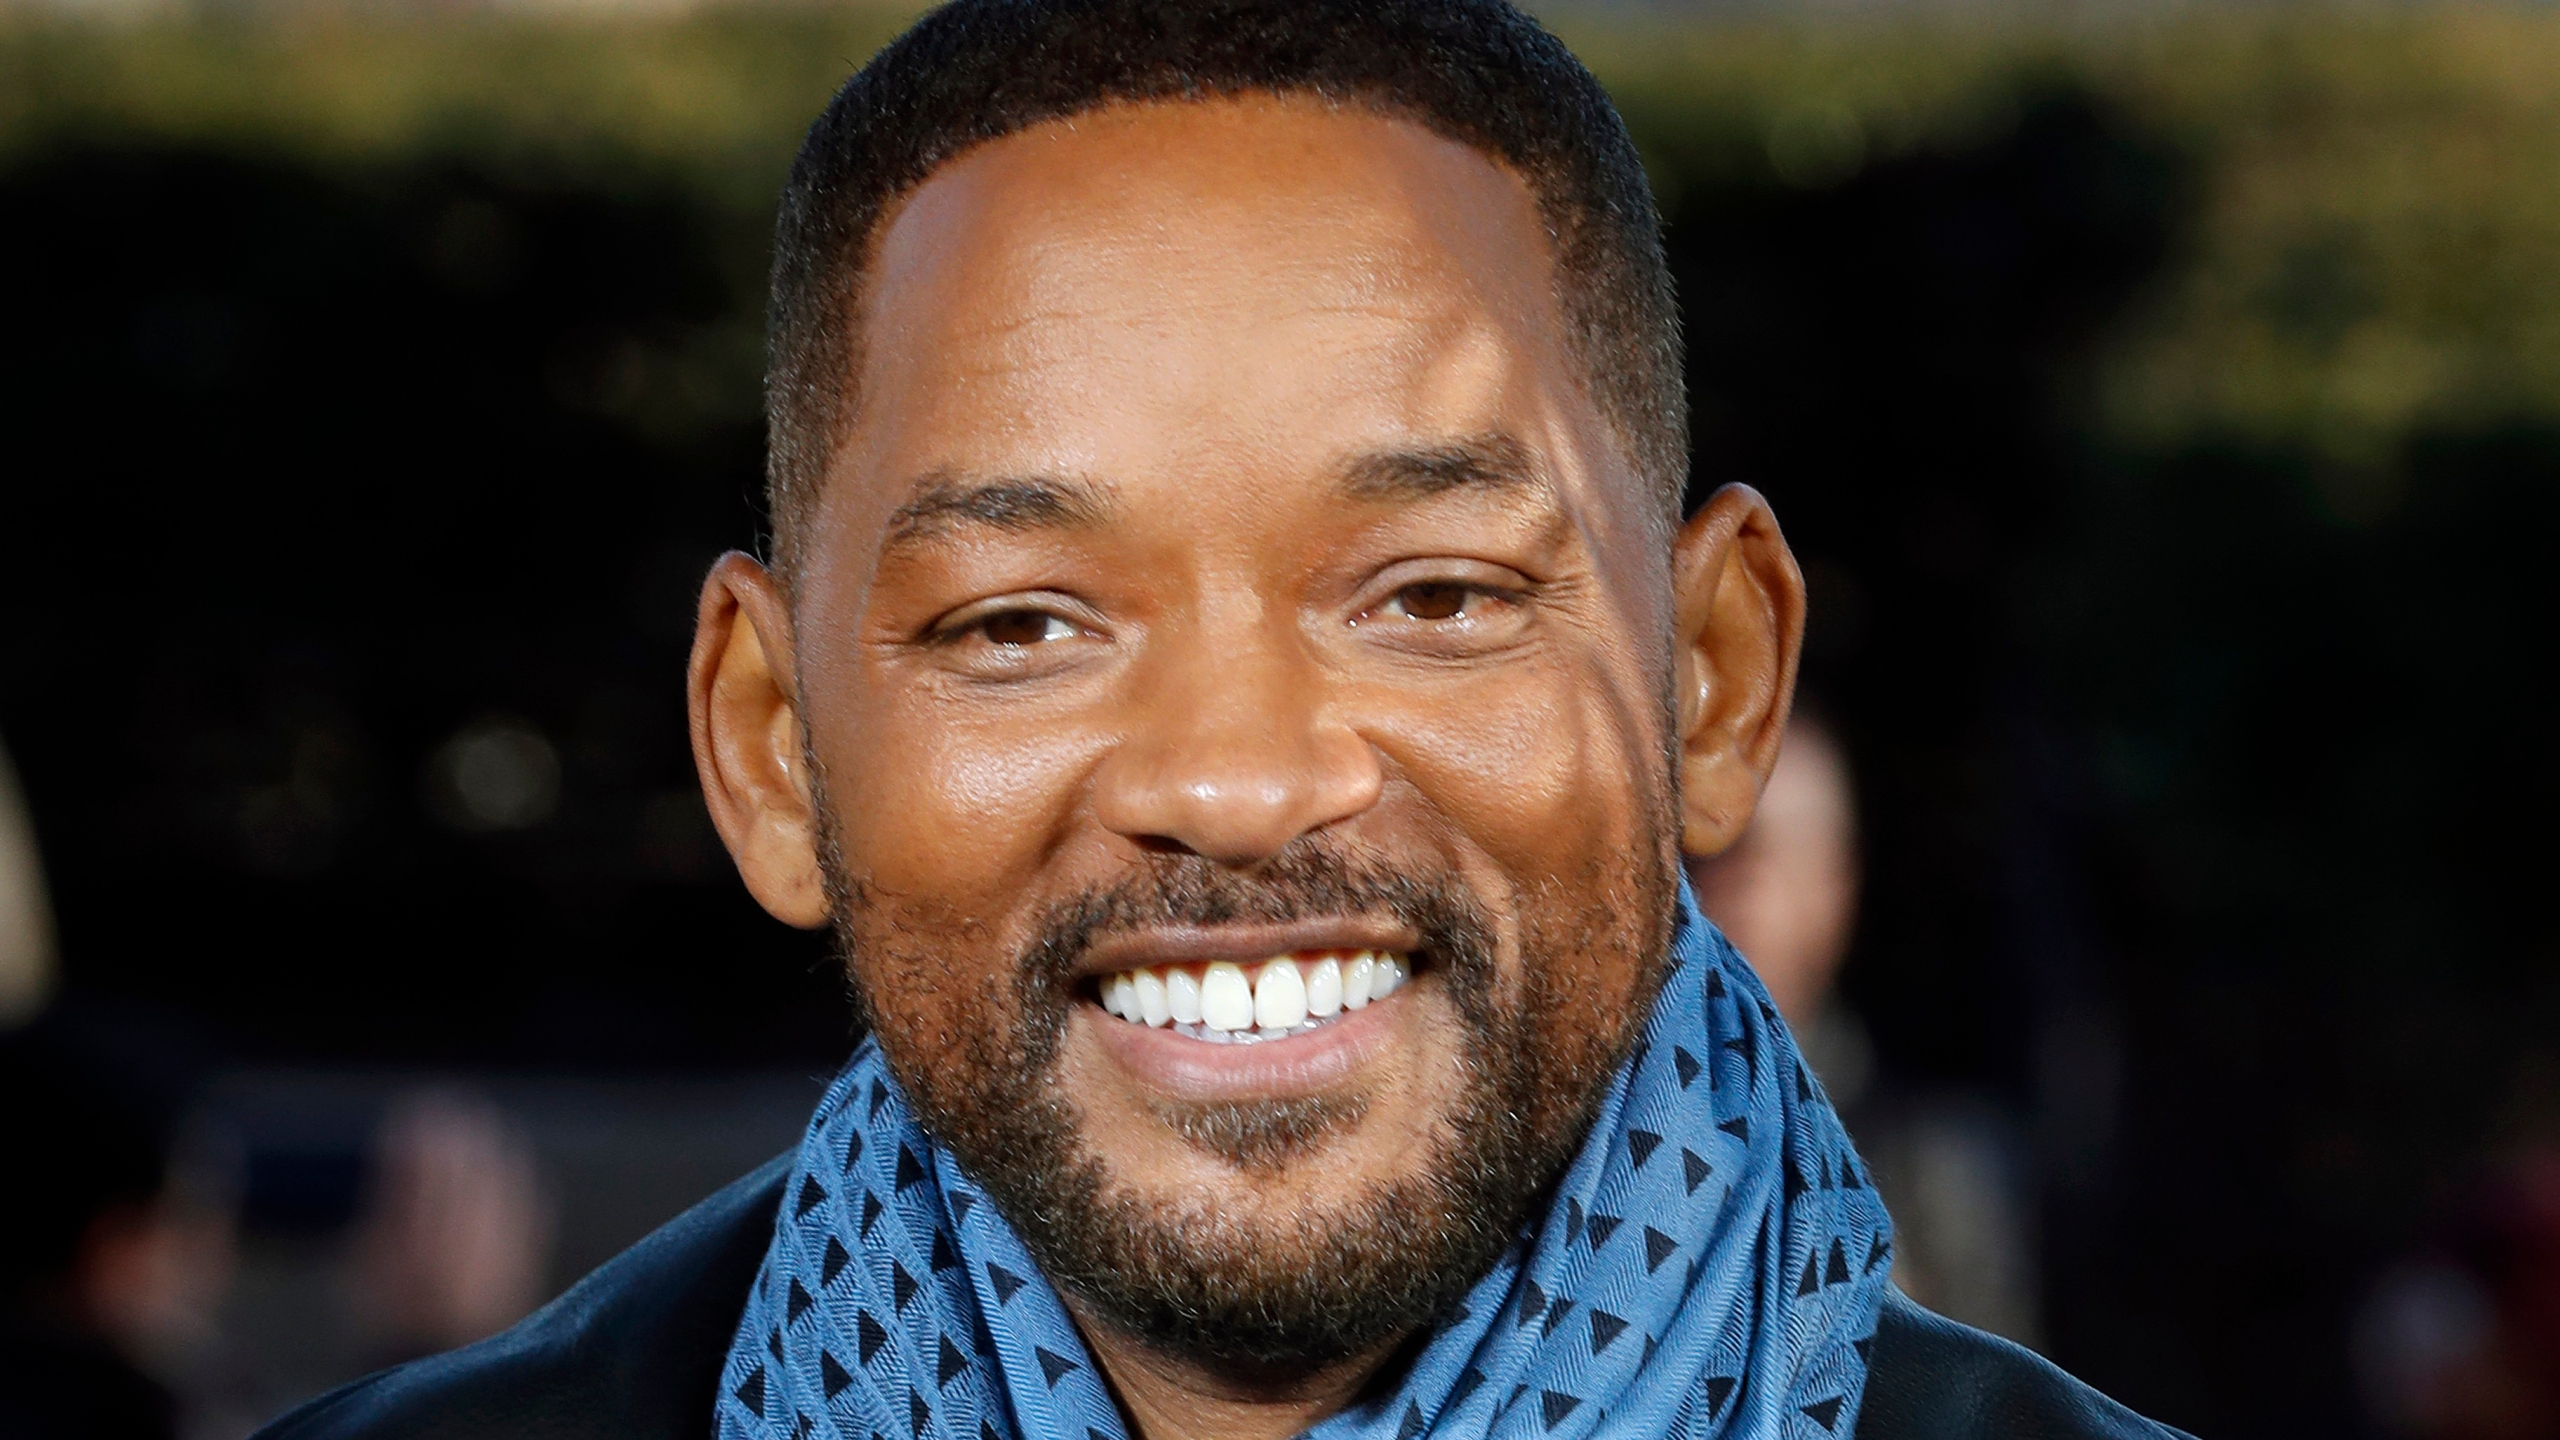 """In this Monday, Jan. 6, 2020, file photo, U.S actor Will Smith poses for photographers during the photo call of """"Bad Boys for Life,"""" in Paris. Smith is ready to open up about his life story. Penguin Press announced Sunday, June 20, 2021, that Smith will release his memoir called """"Will"""" on Nov. 9. The actor-rapper shared a photo of the book's cover art to more than 54 million followers on Instagram. Smith said he is """"finally ready"""" to release his memoir after working on his book for the past two years. (AP Photo/Thibault Camus, File)"""